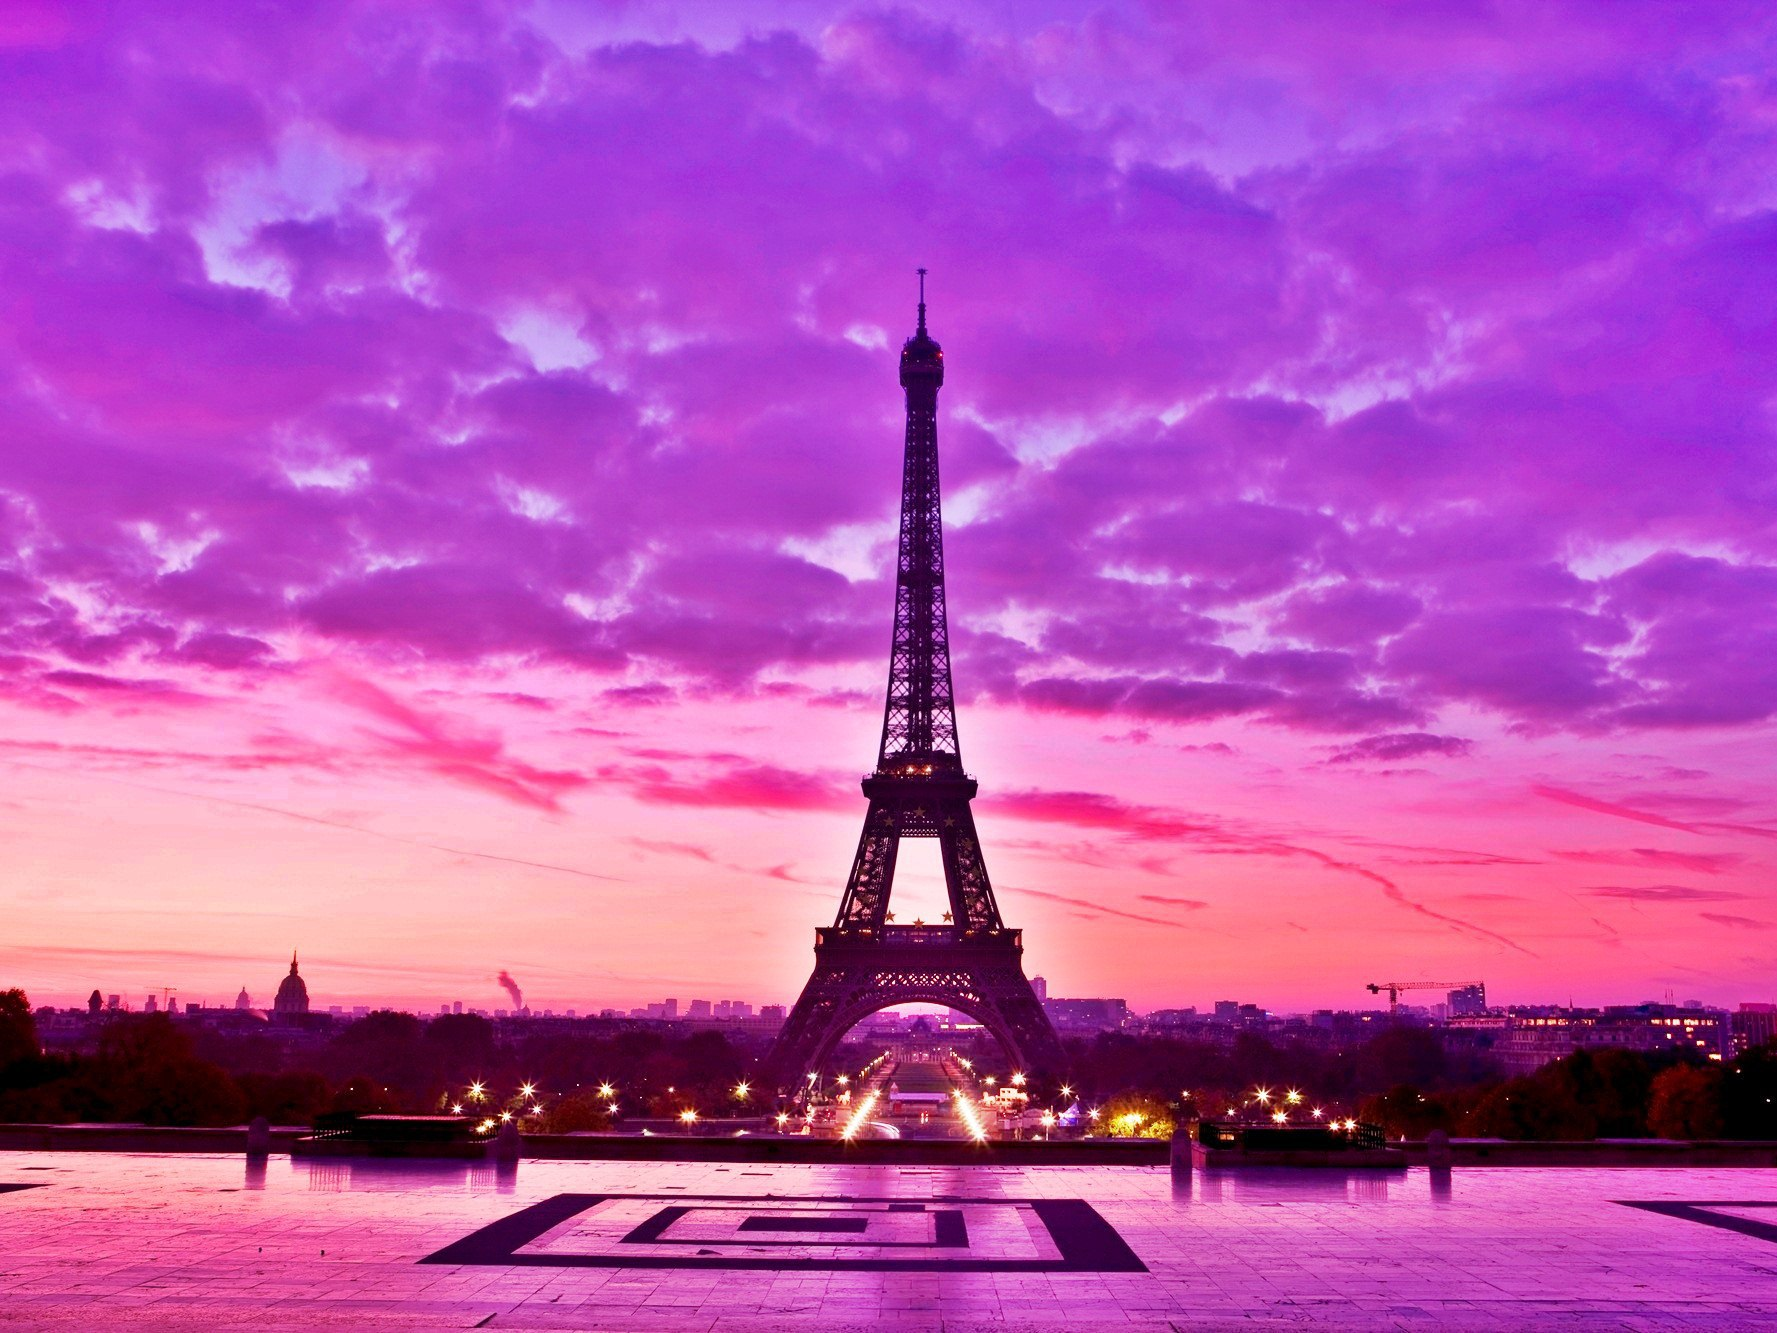 Pink Eiffel Tower Wallpaper